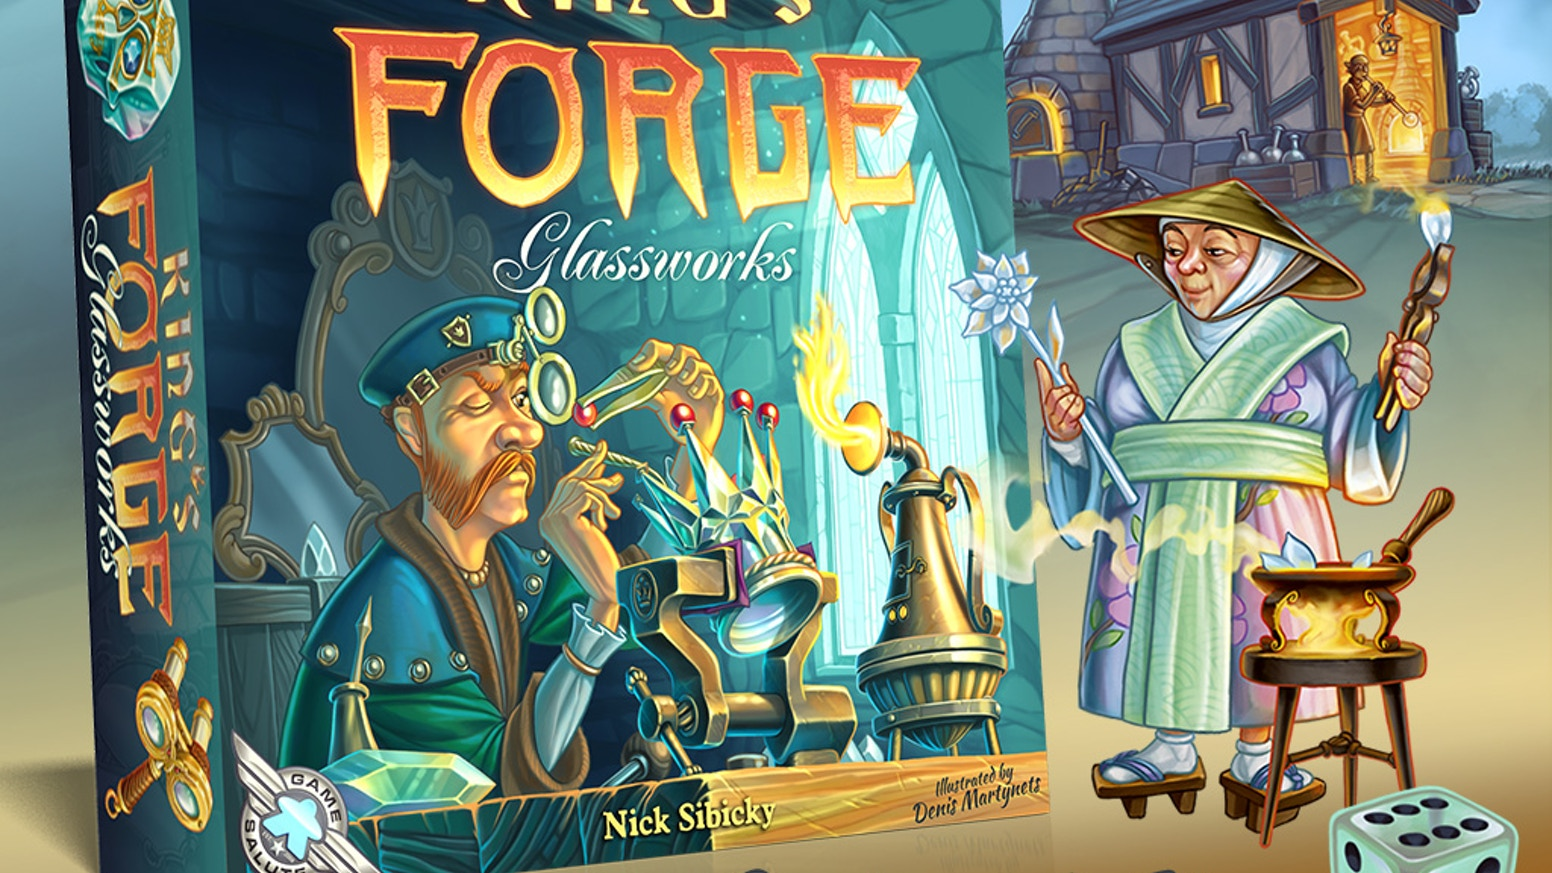 King 39 s forge glassworks by game salute kickstarter for Craft in america forge